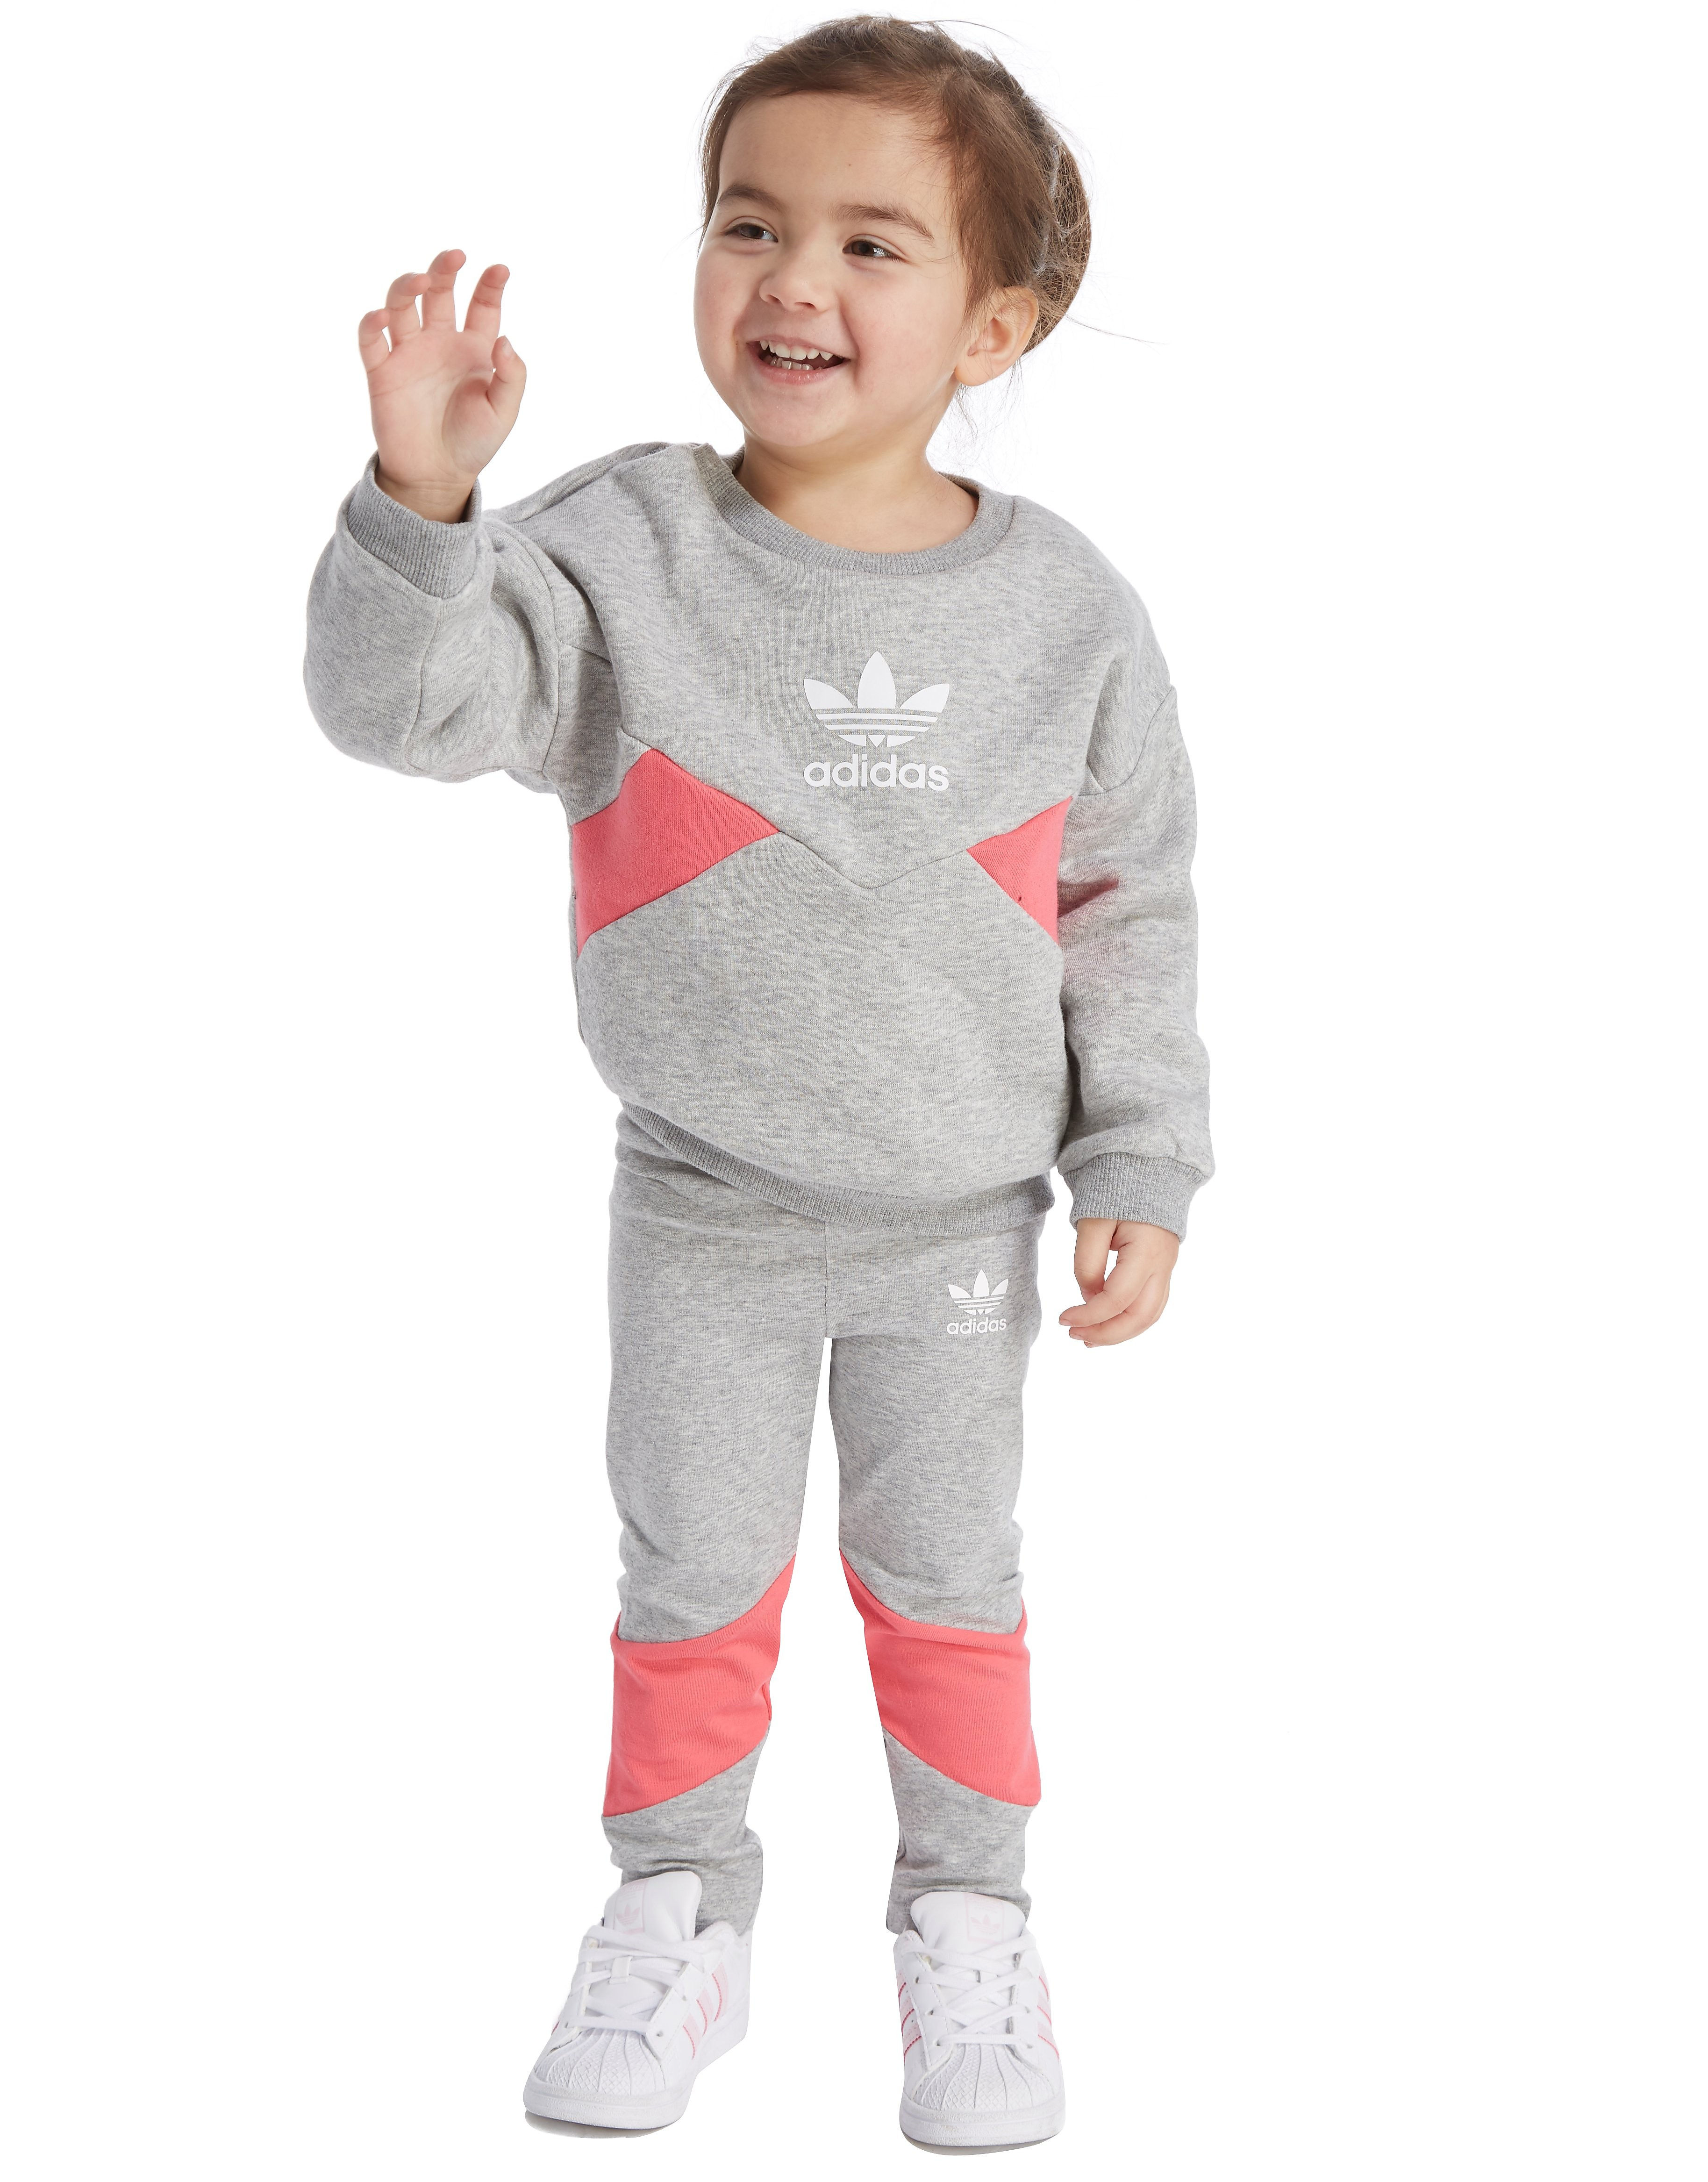 adidas Originals Girls' Crew/Leggings Set Infant